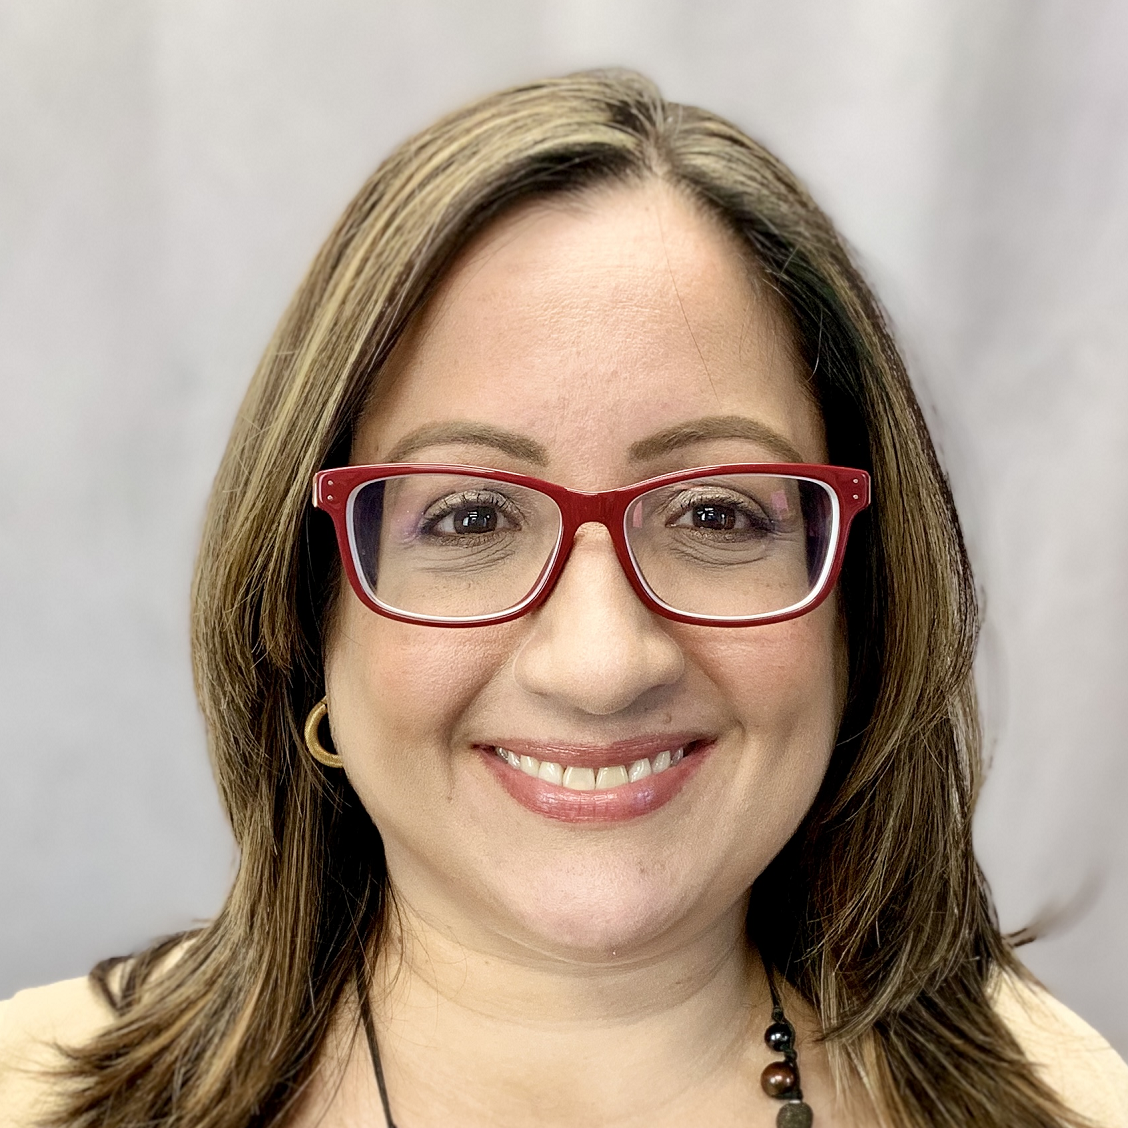 Dr Madeline Aviles-Hernandez Joins The Price Center as COO